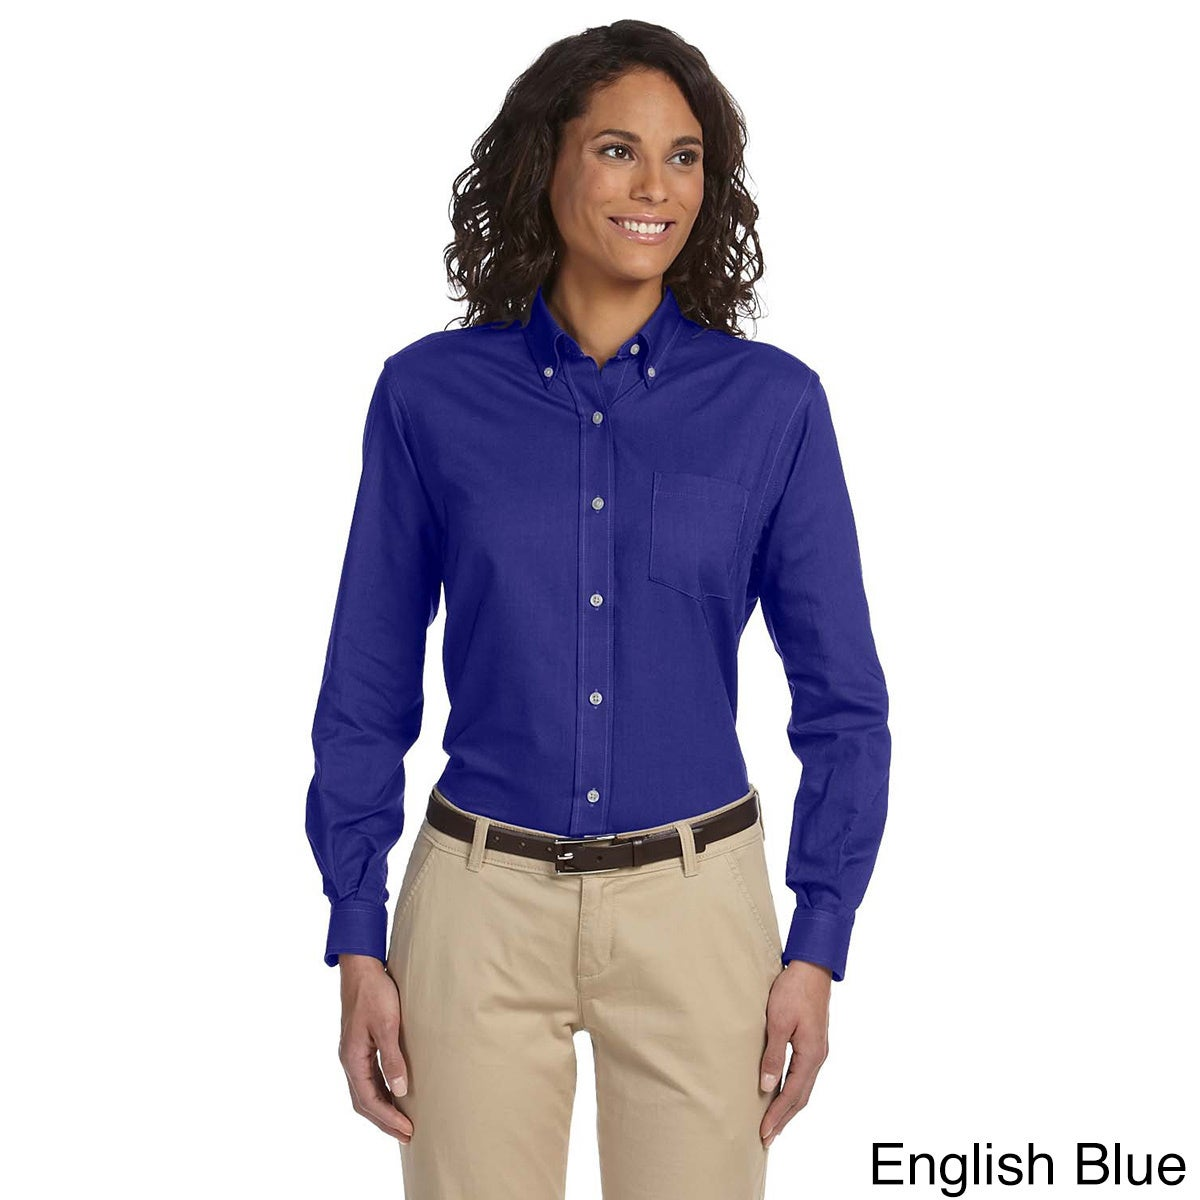 Van Heusen Women's Long Sleeve Wrinkle-resistant Oxford S...